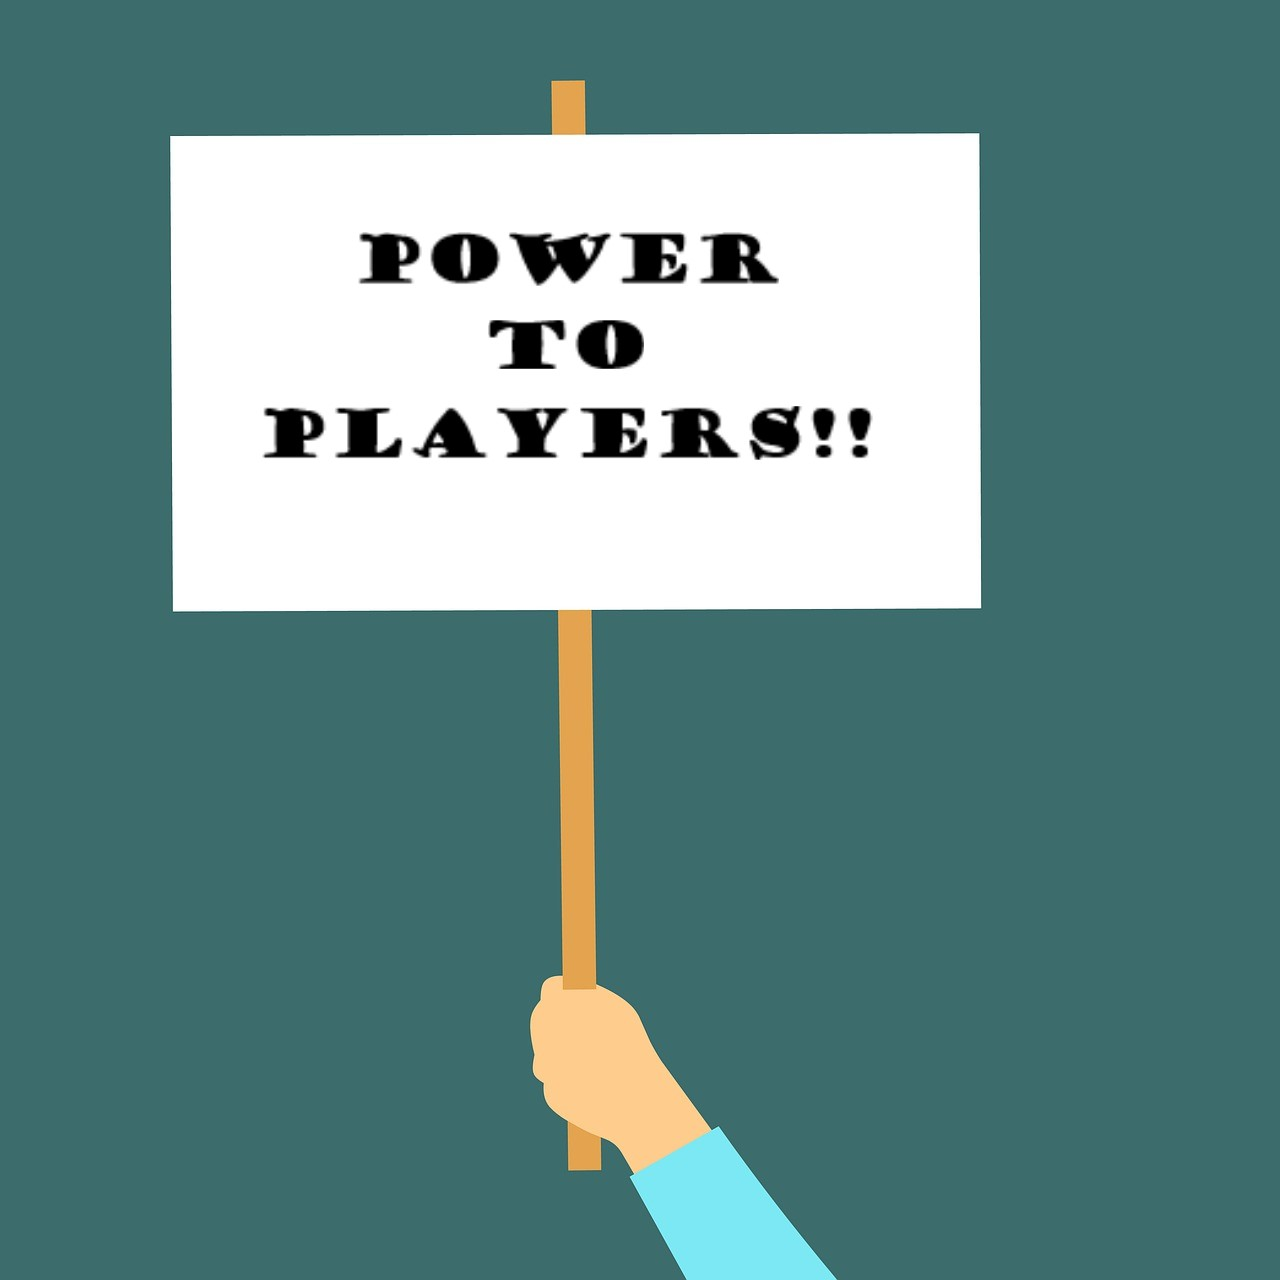 Power to Players